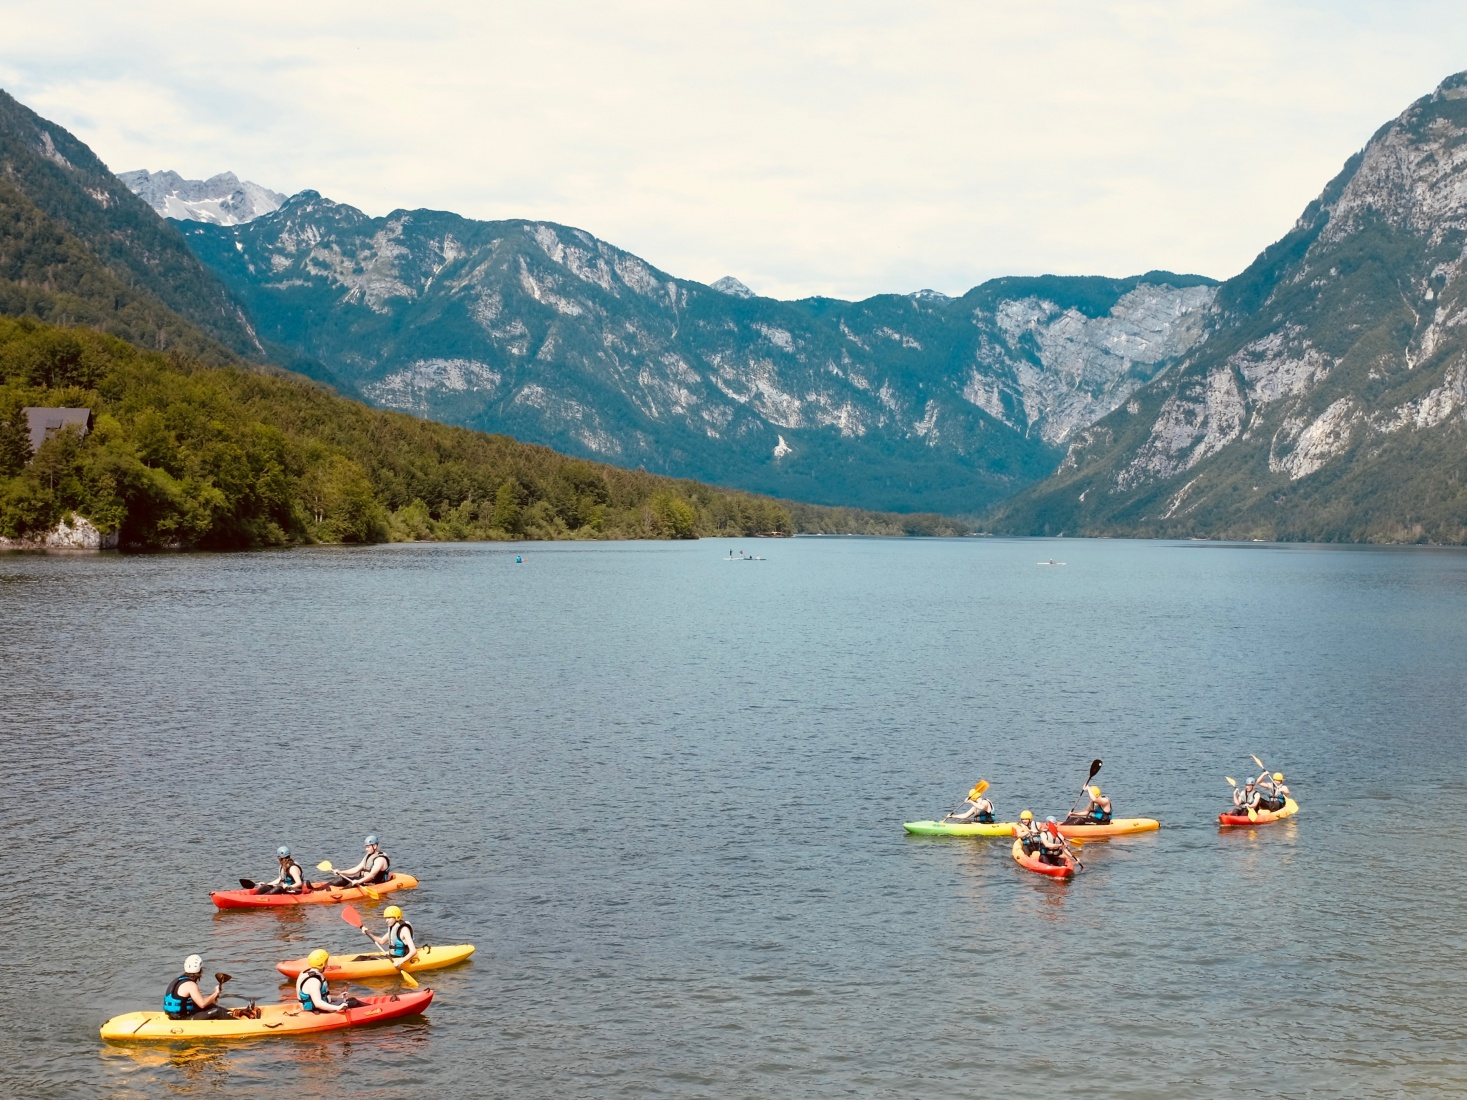 People kayaking on Lake Bohinj in Slovenia in June 2018, looking west from the lake's eastern shore.